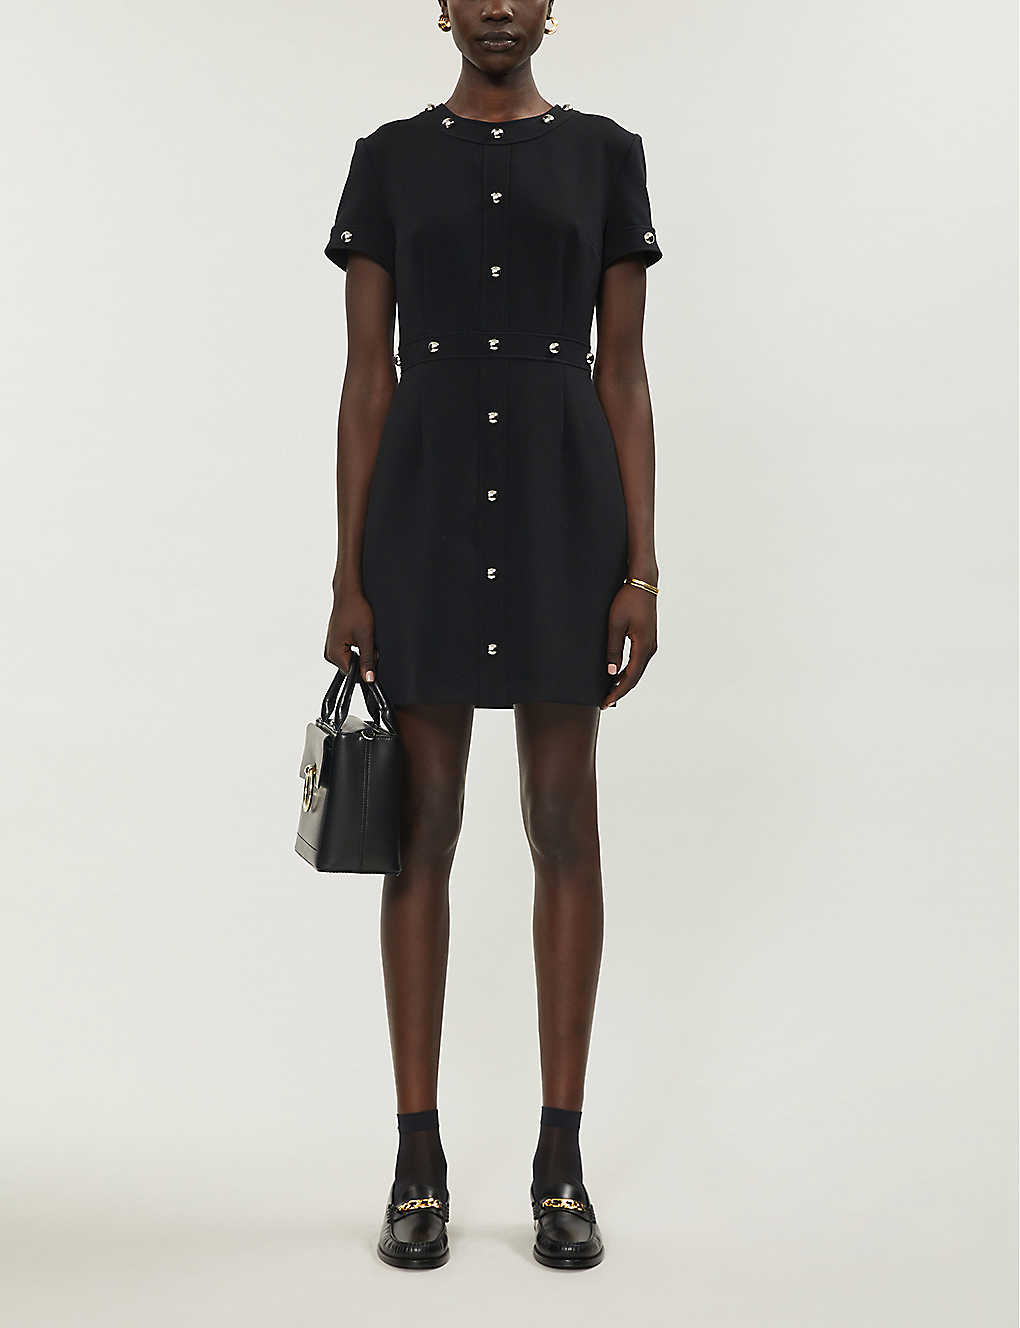 French Fashion Clothing Brand Claudie Pierlot French Dress Parisian Style Paris Chic Style